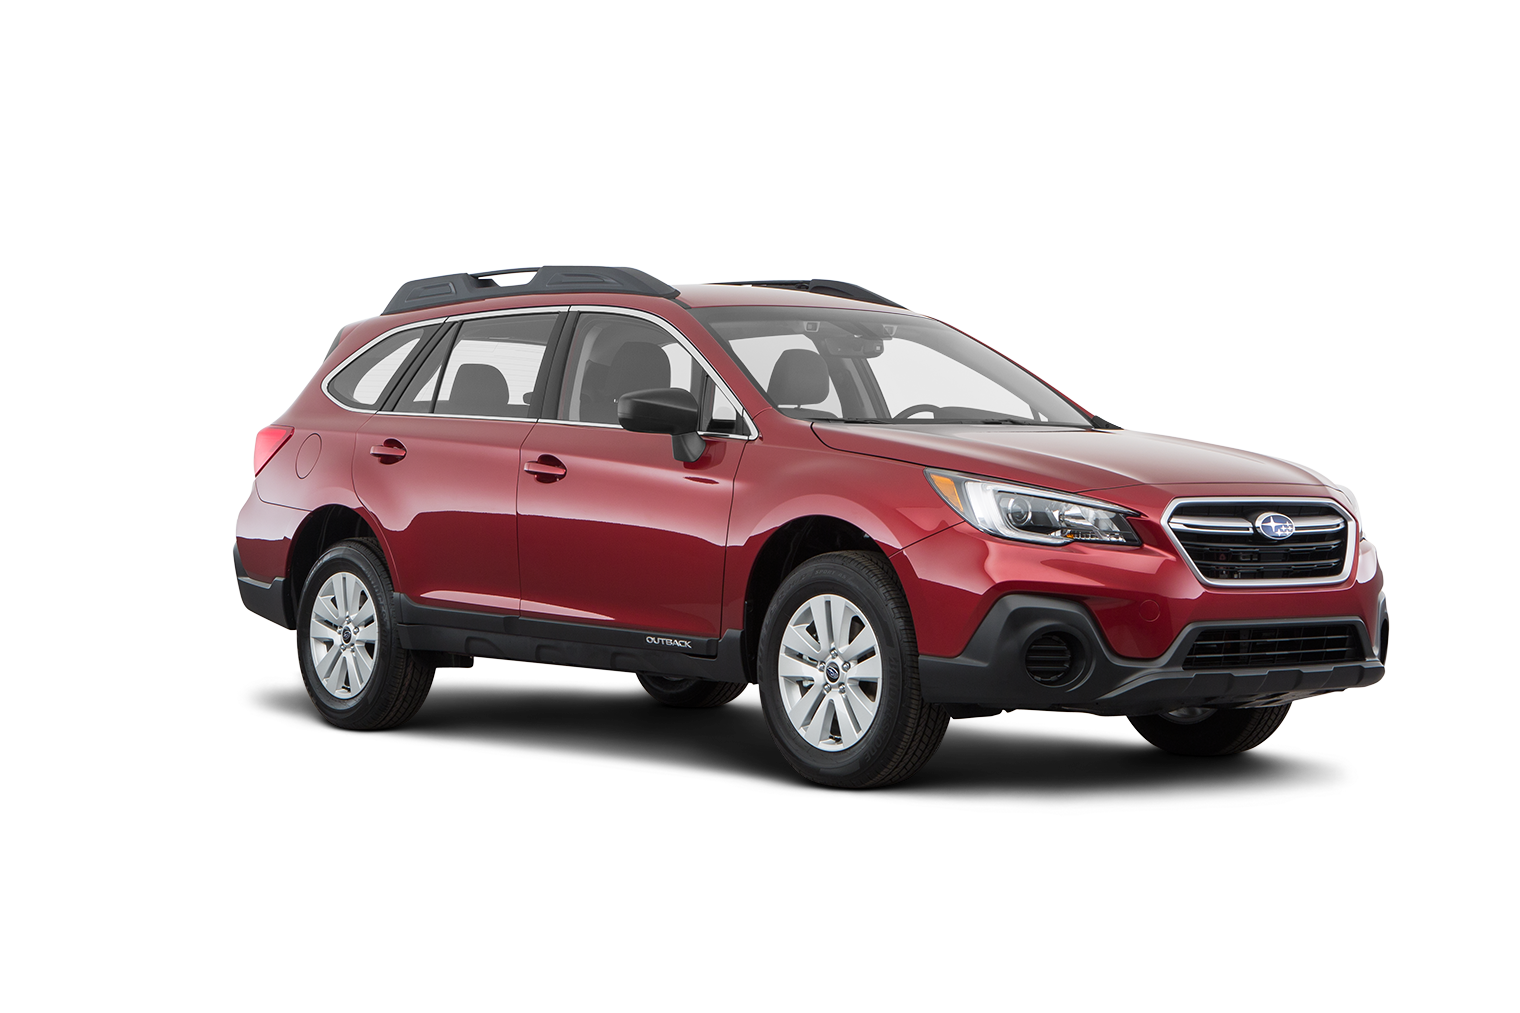 Detroit MI - 2019 Subaru Outback Base model